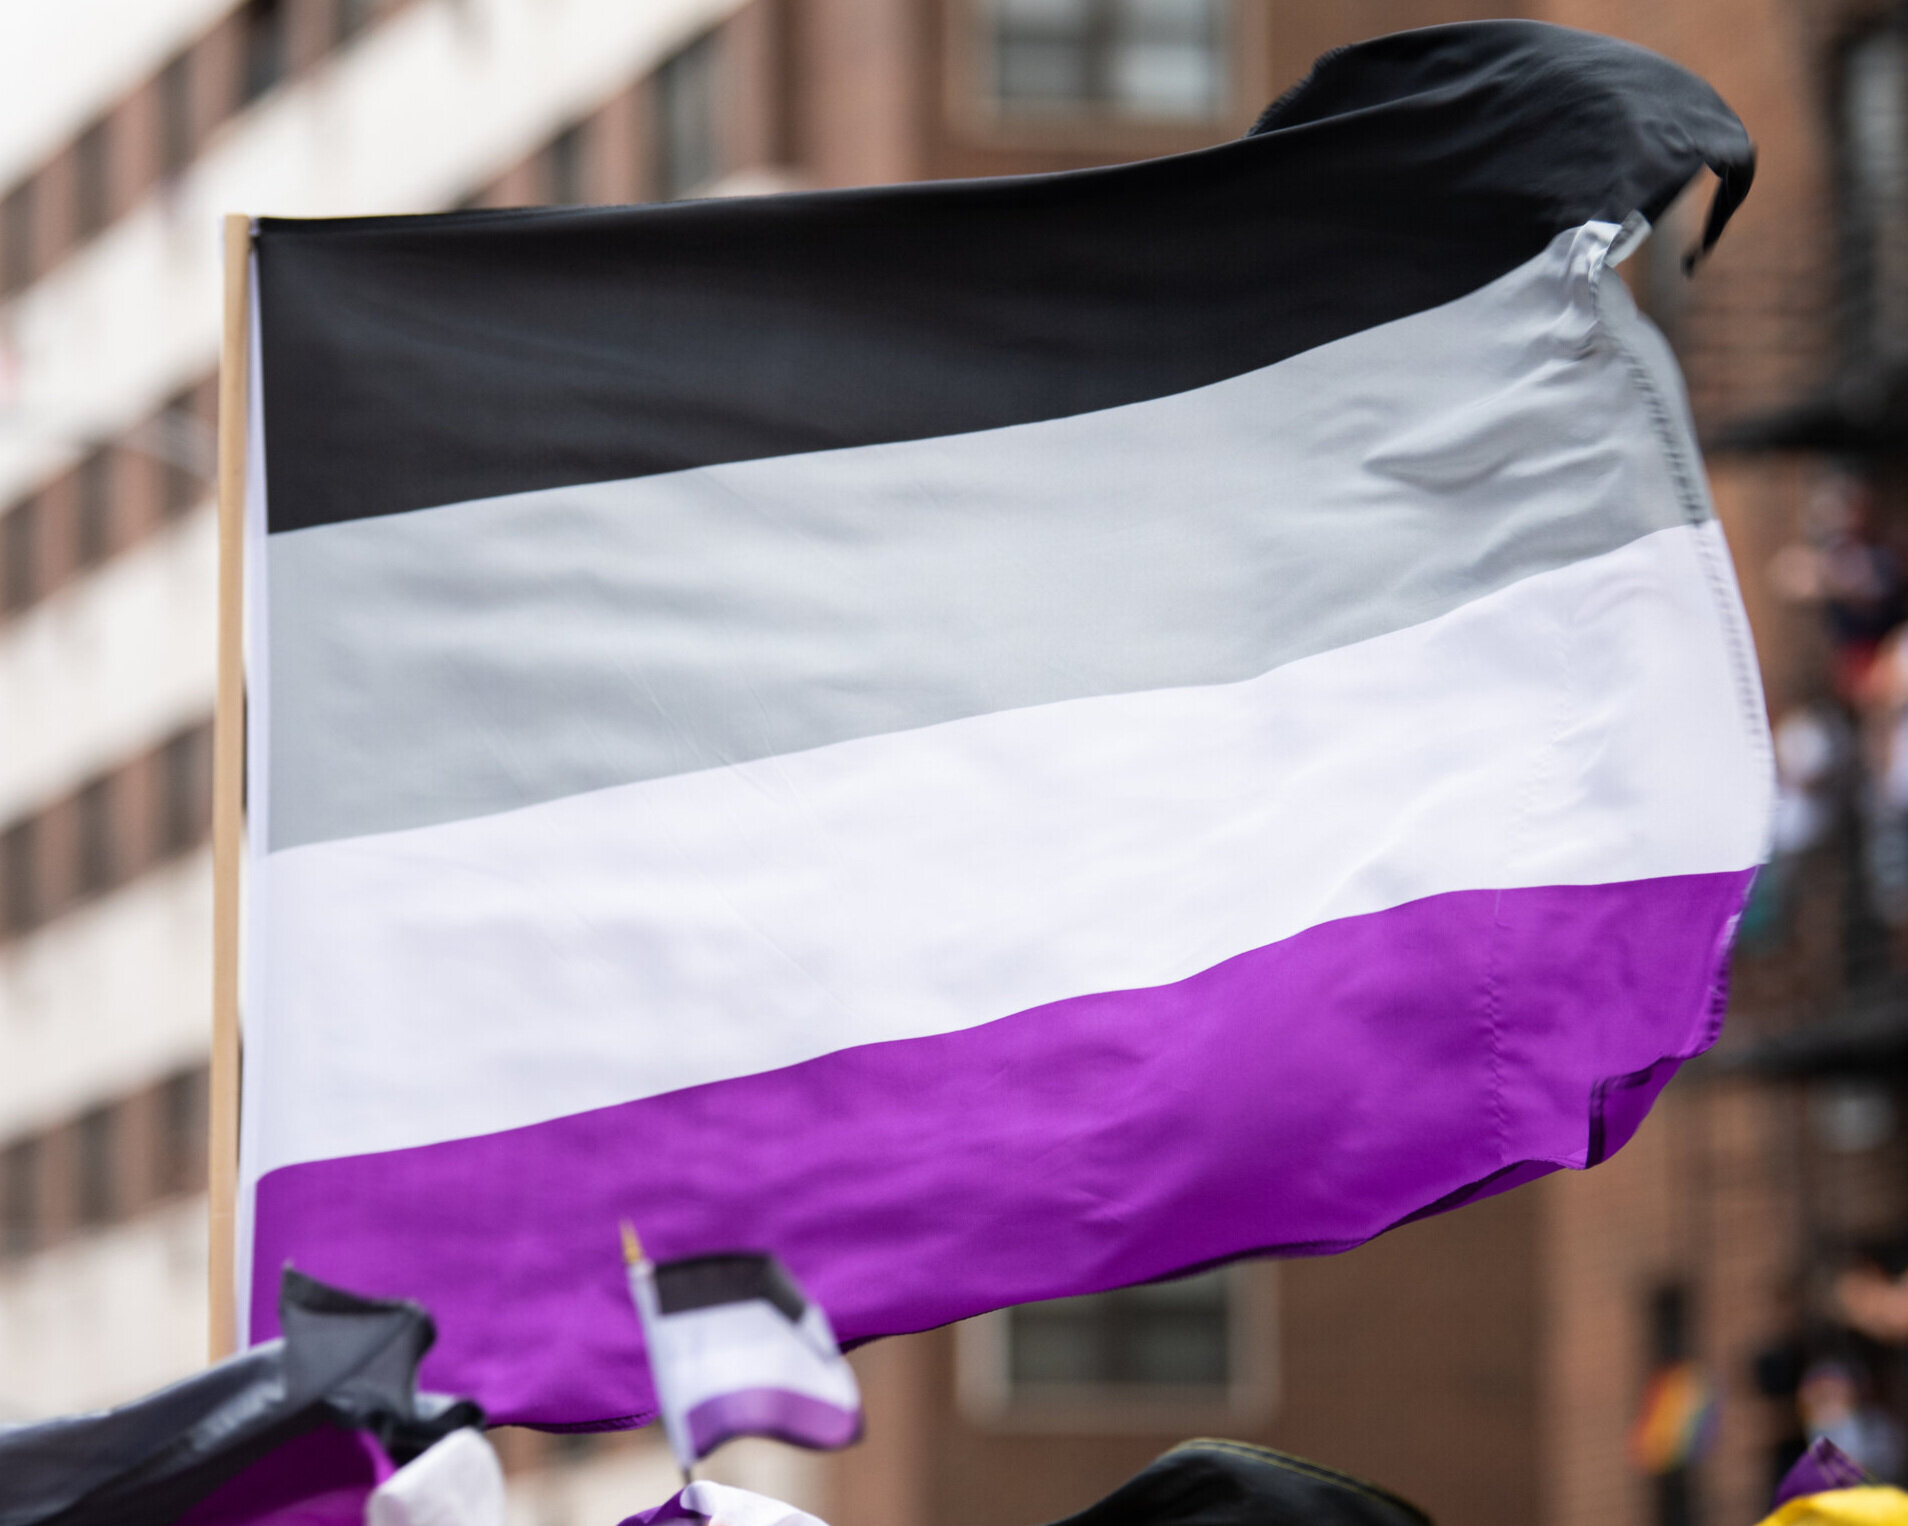 A large asexual flag waving in front of a blurry building.